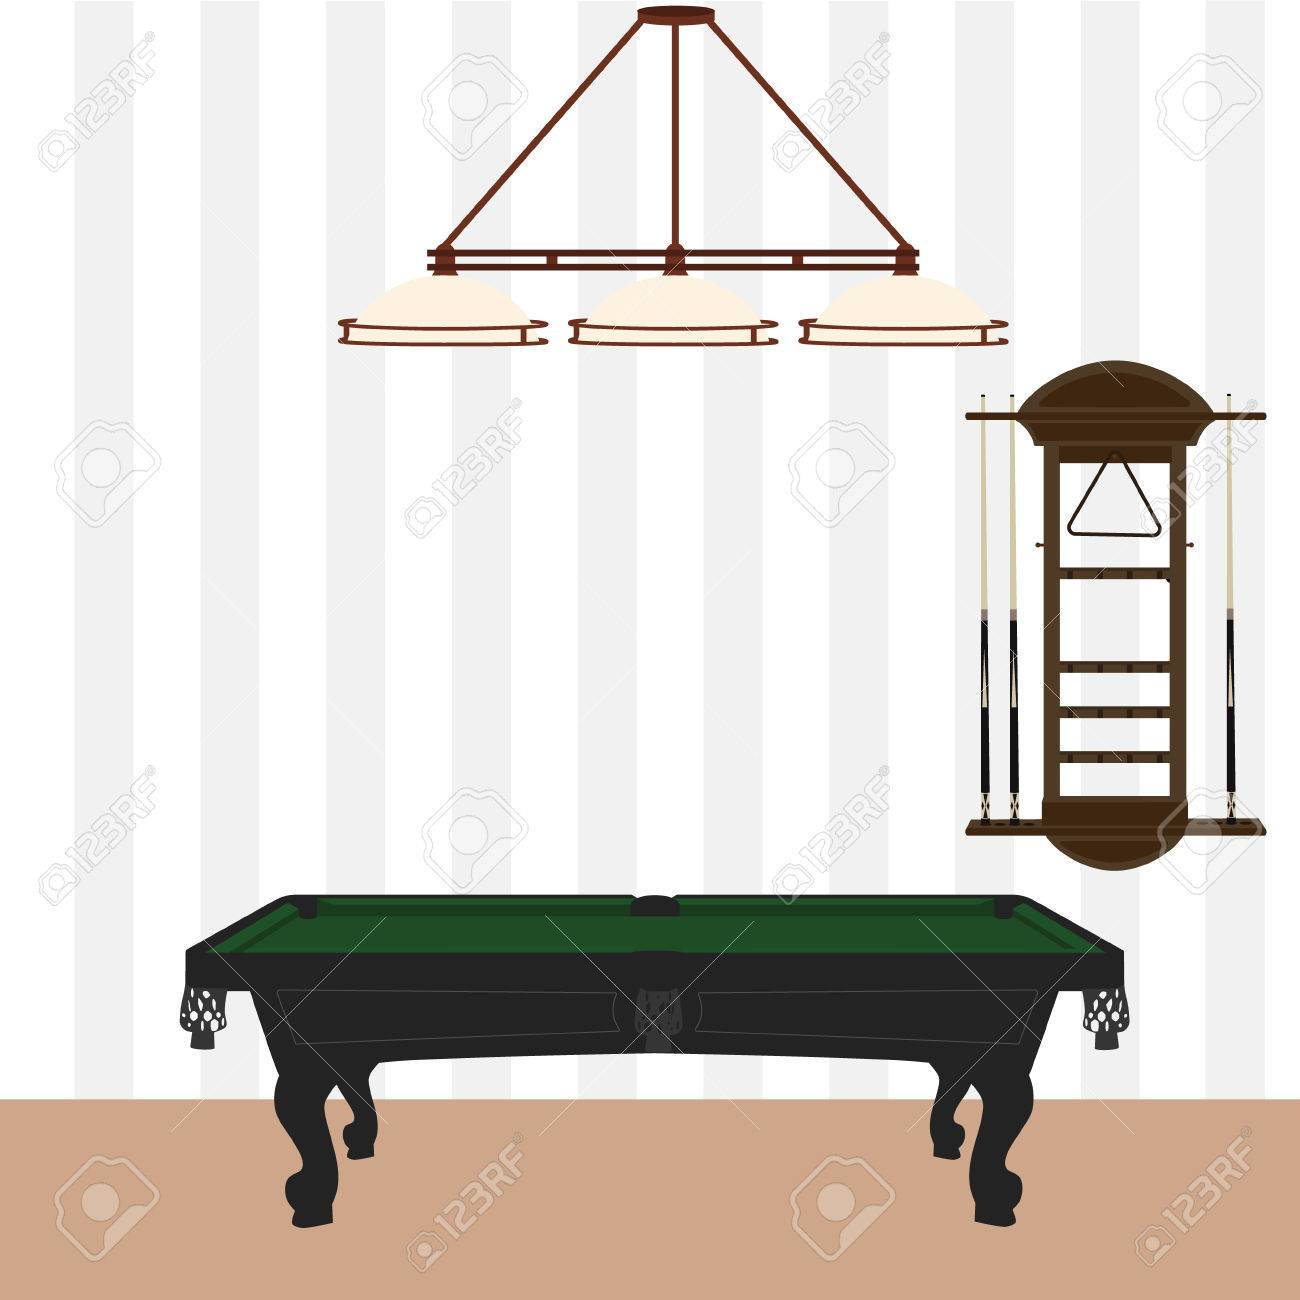 Vector   Vector Illustration Retro, Vintage Pool Table With Green Cloth,  Wall Cue Rack And Lamp With Three Shades. Pool, Billiard Room